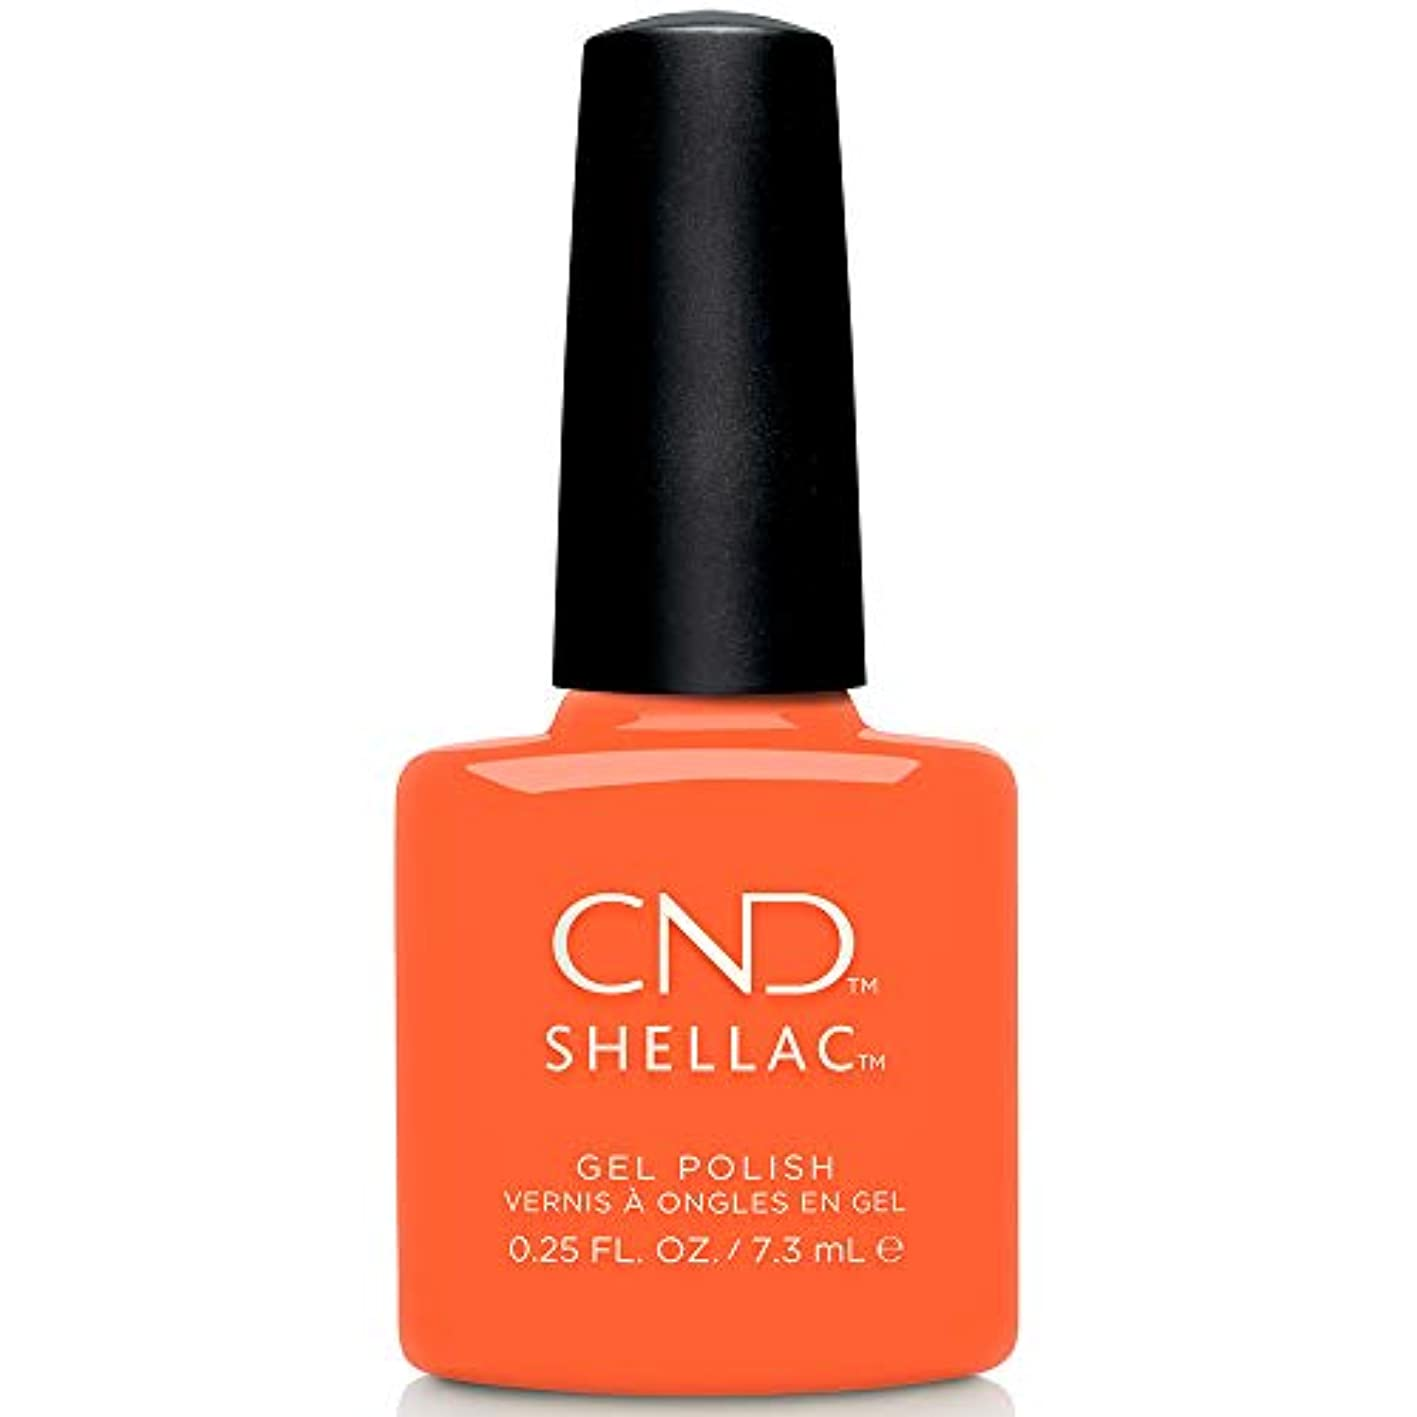 CND Shellac - Treasured Moments Fall 2019 Collection - B-Day Candle - 0.25oz / 7.3ml